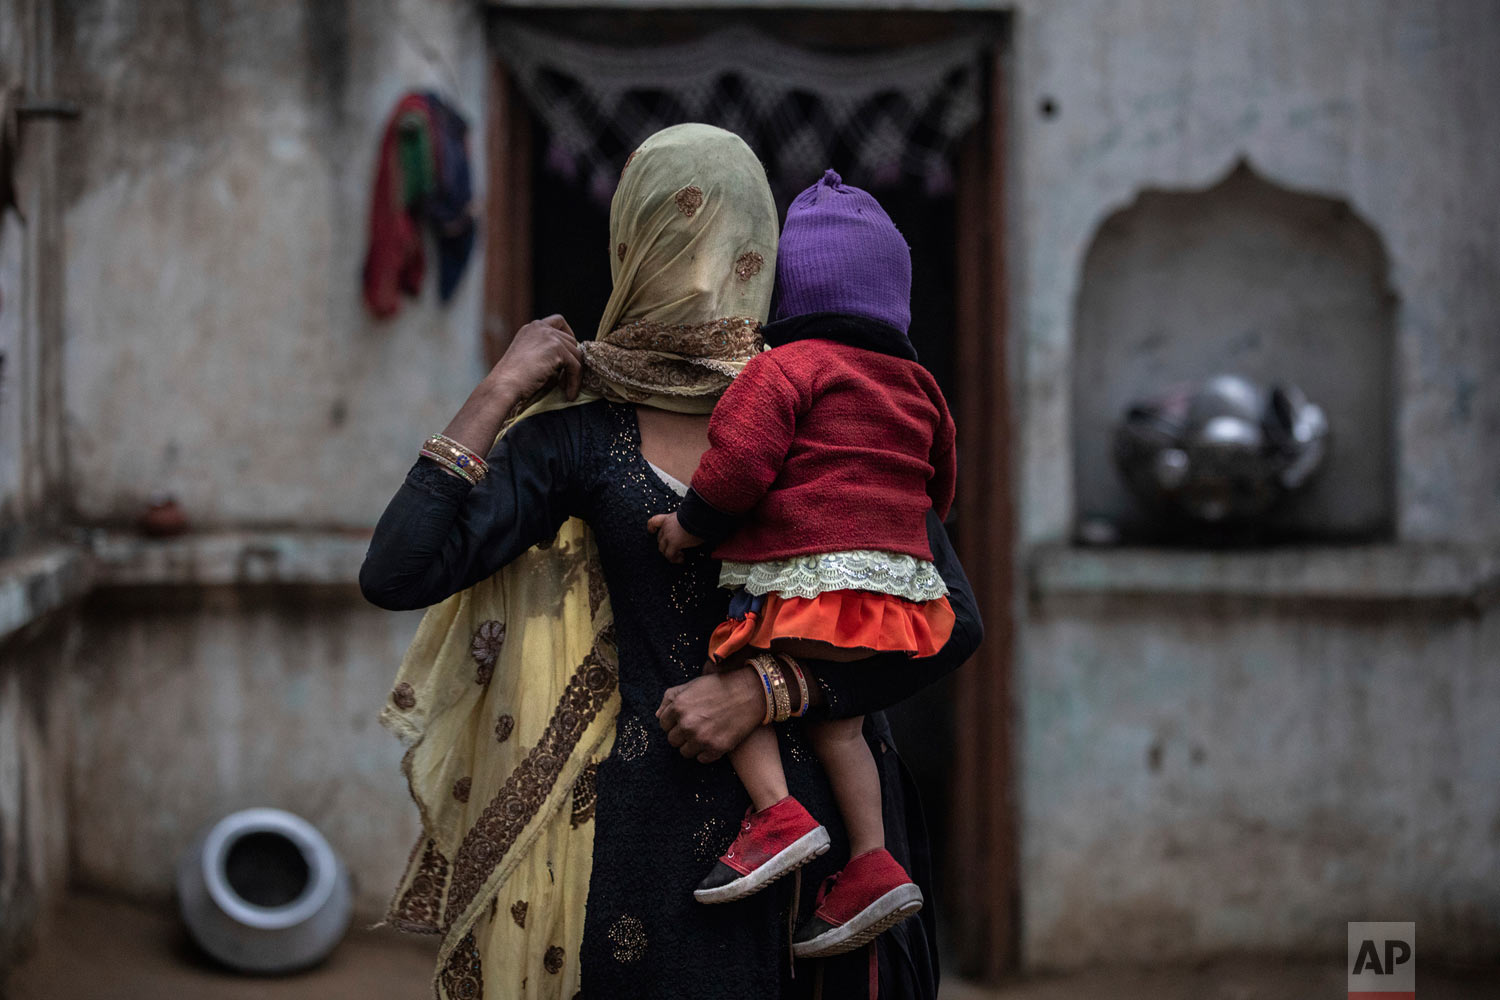 The wife of Saghir Khan, Anisa Khan, holds their daughter, Alfisa, at the family's house in Mirzapur, Jan. 22, 2019, Saghir was beaten by a group of Hindus after being spotted transporting cows. (AP Photo/Bernat Armangue)